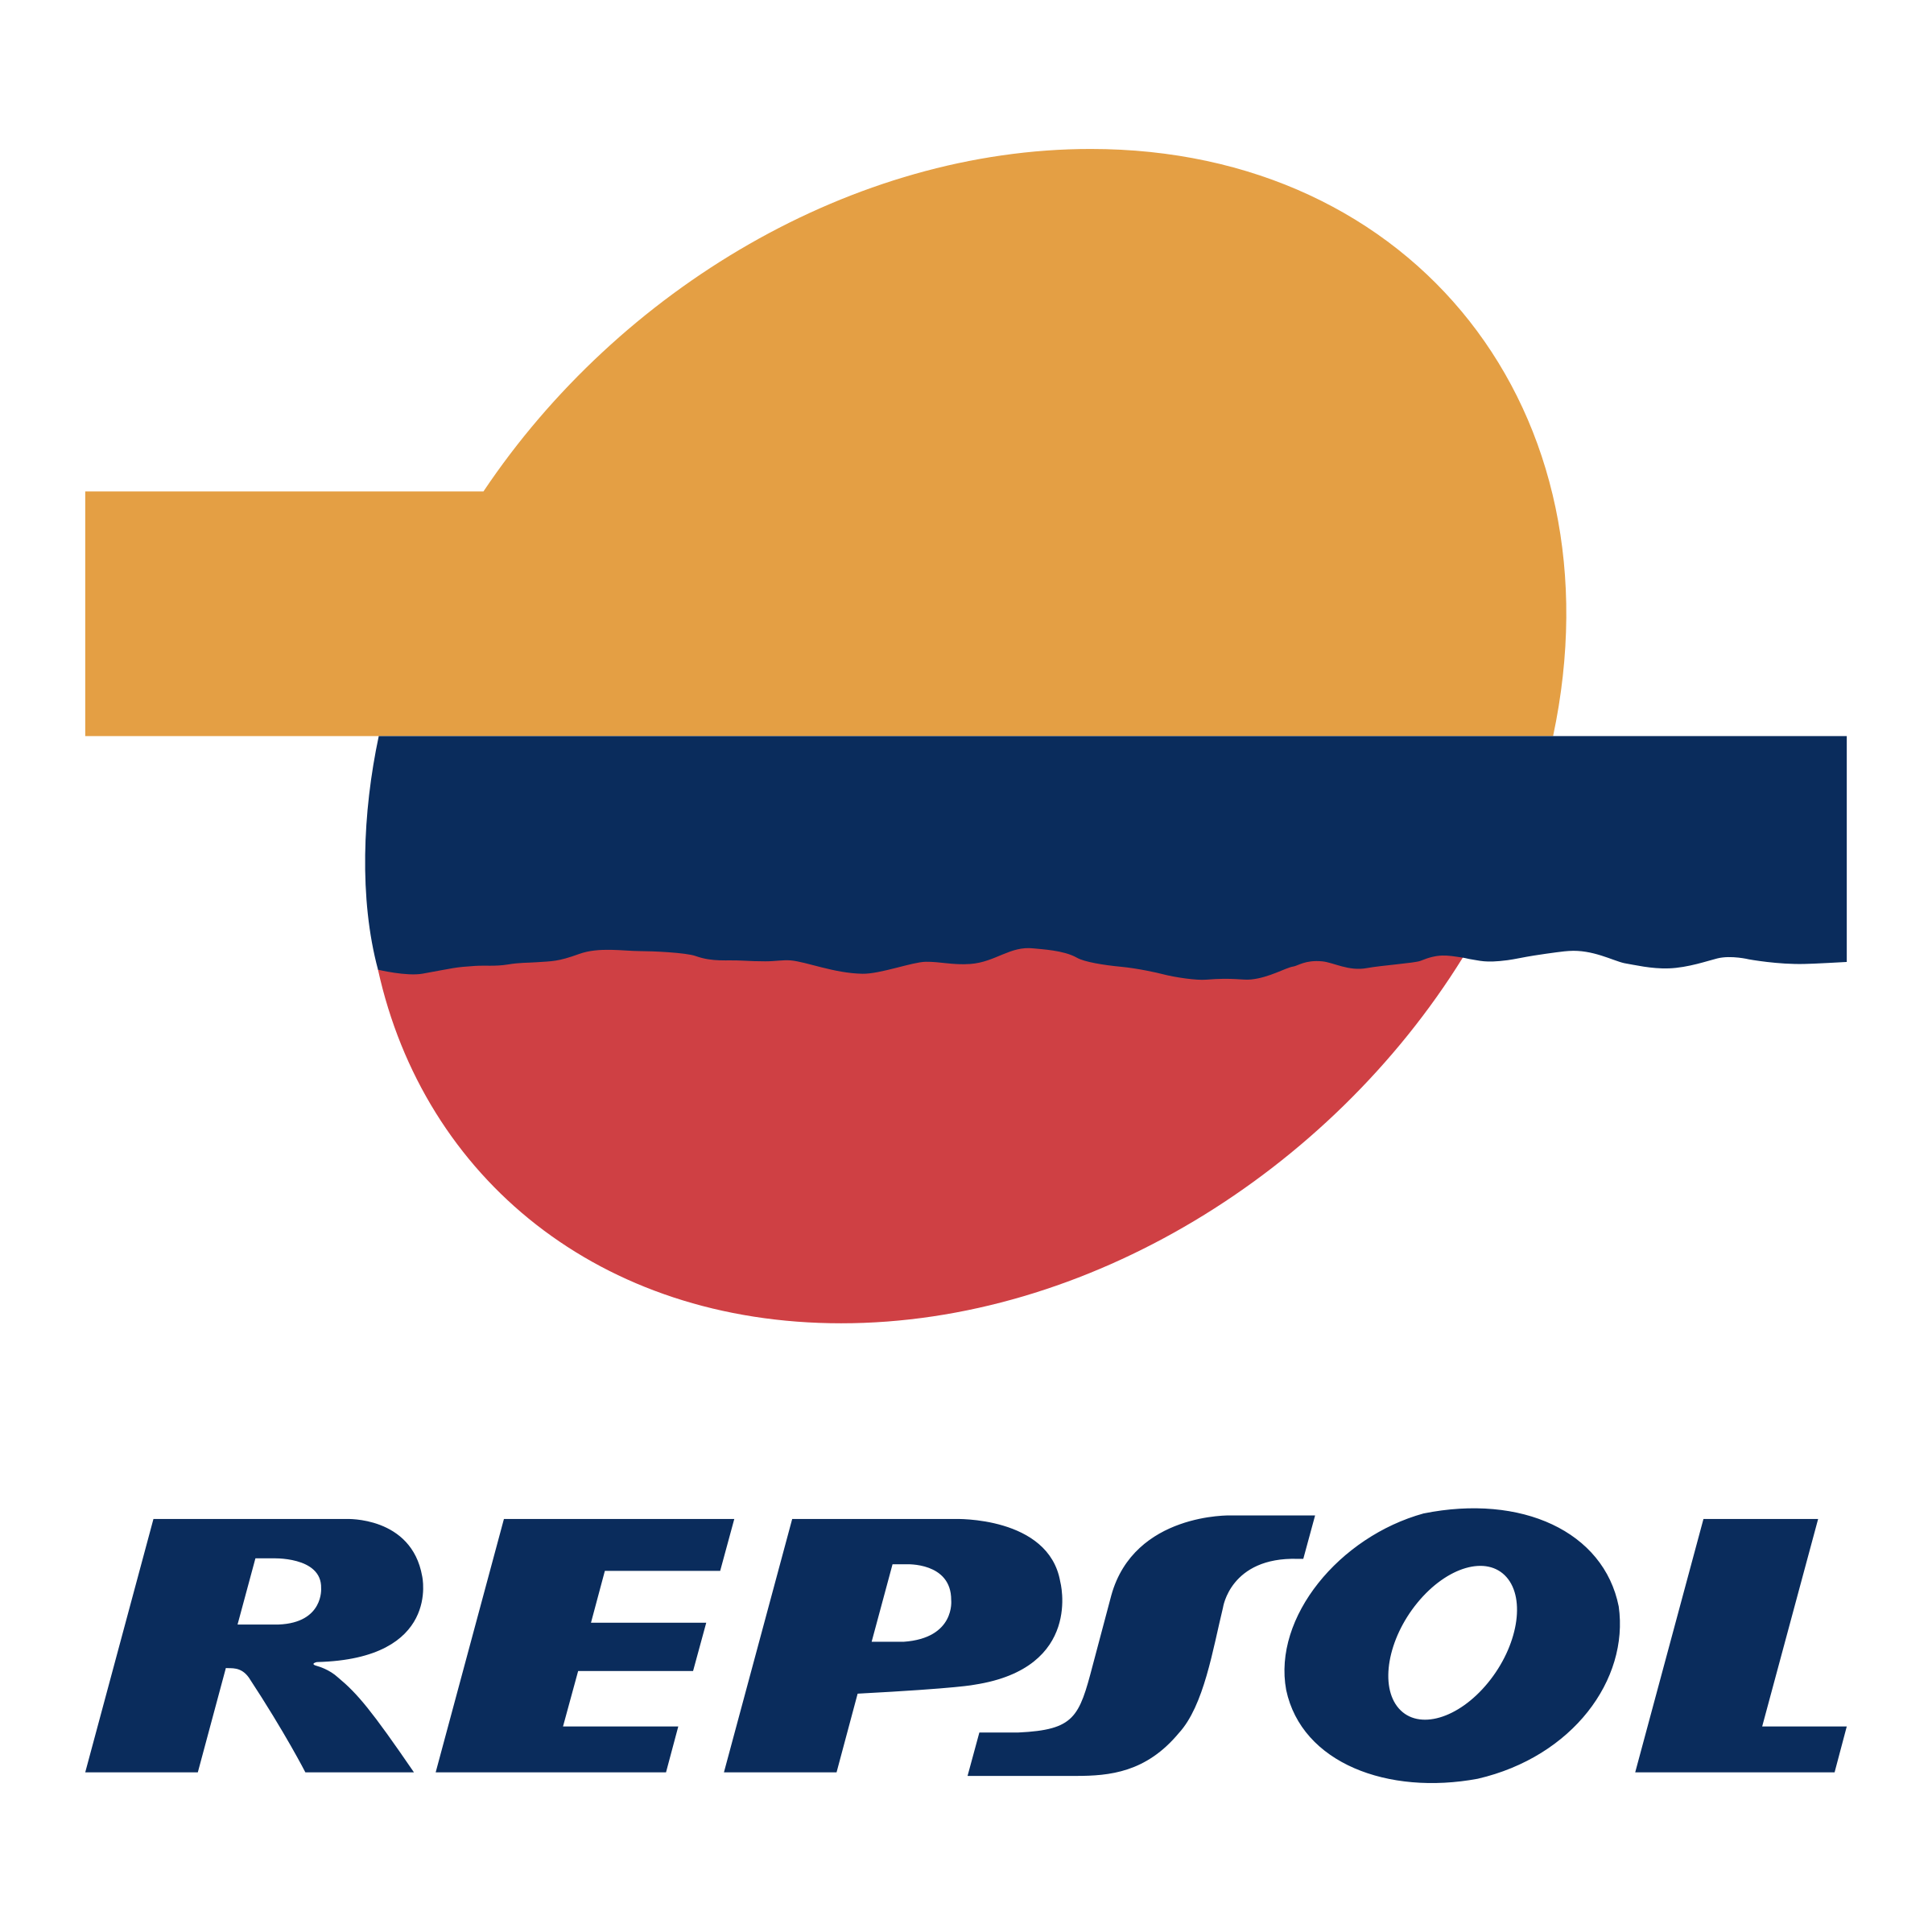 repsol logo png transparent svg vector freebie supply rh freebiesupply com repsol logo 2016 repsol logo vector free download